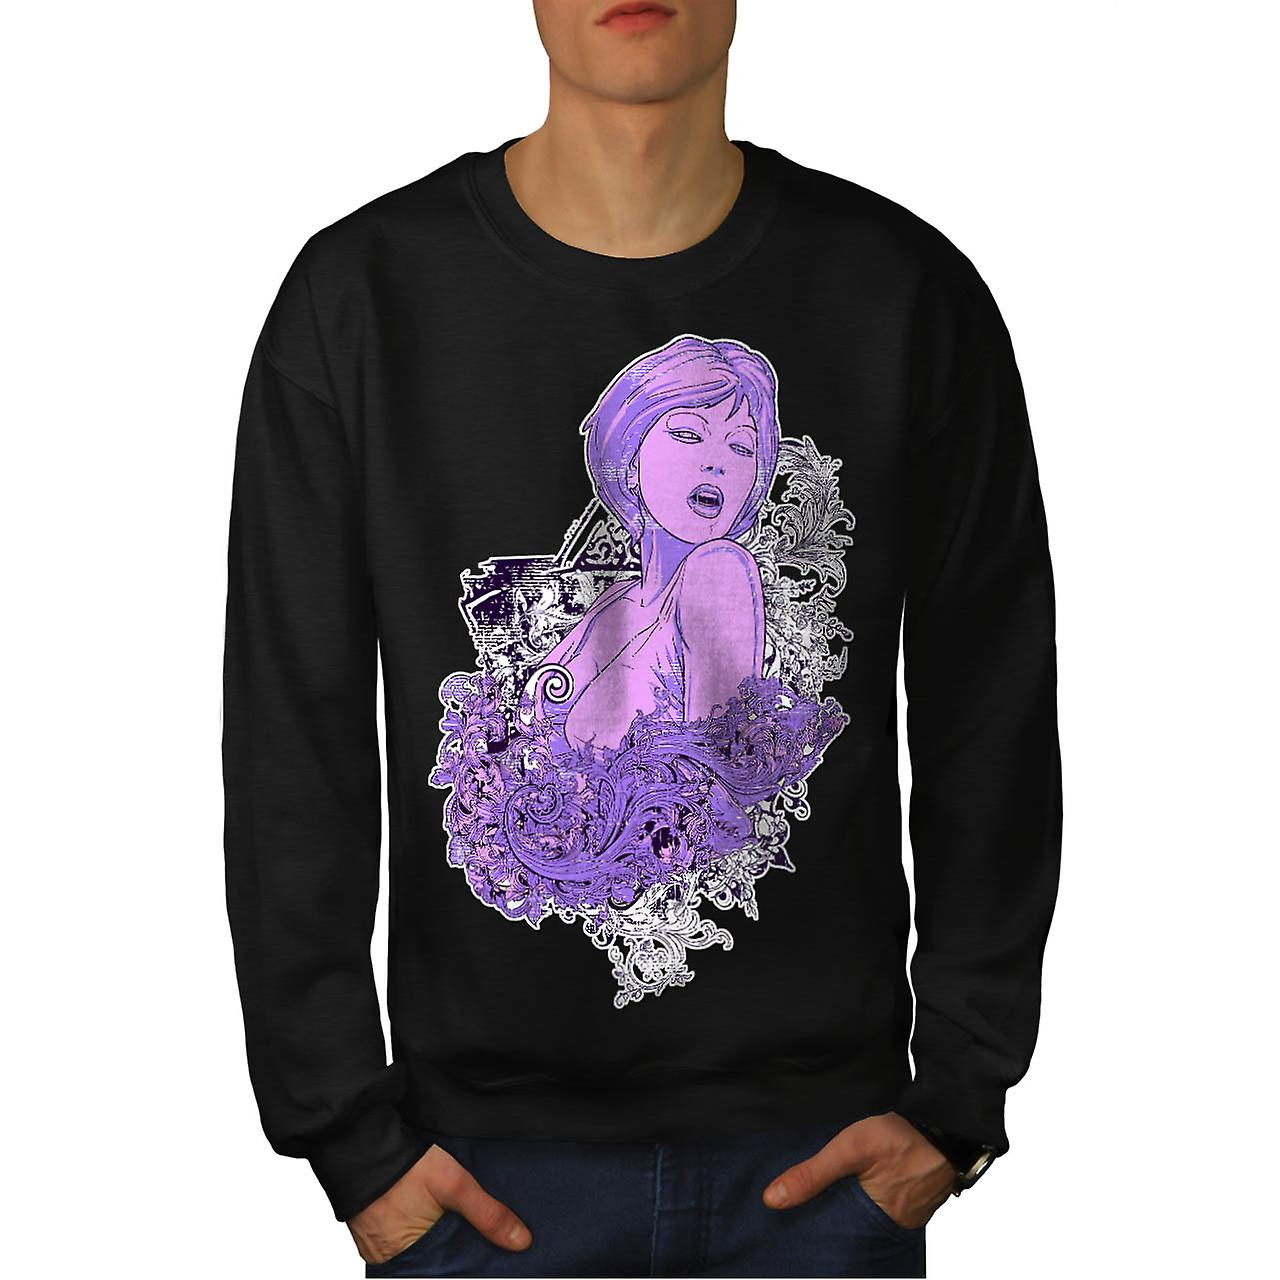 Sexy Girl Art Fashion Men Black Sweatshirt | Wellcoda